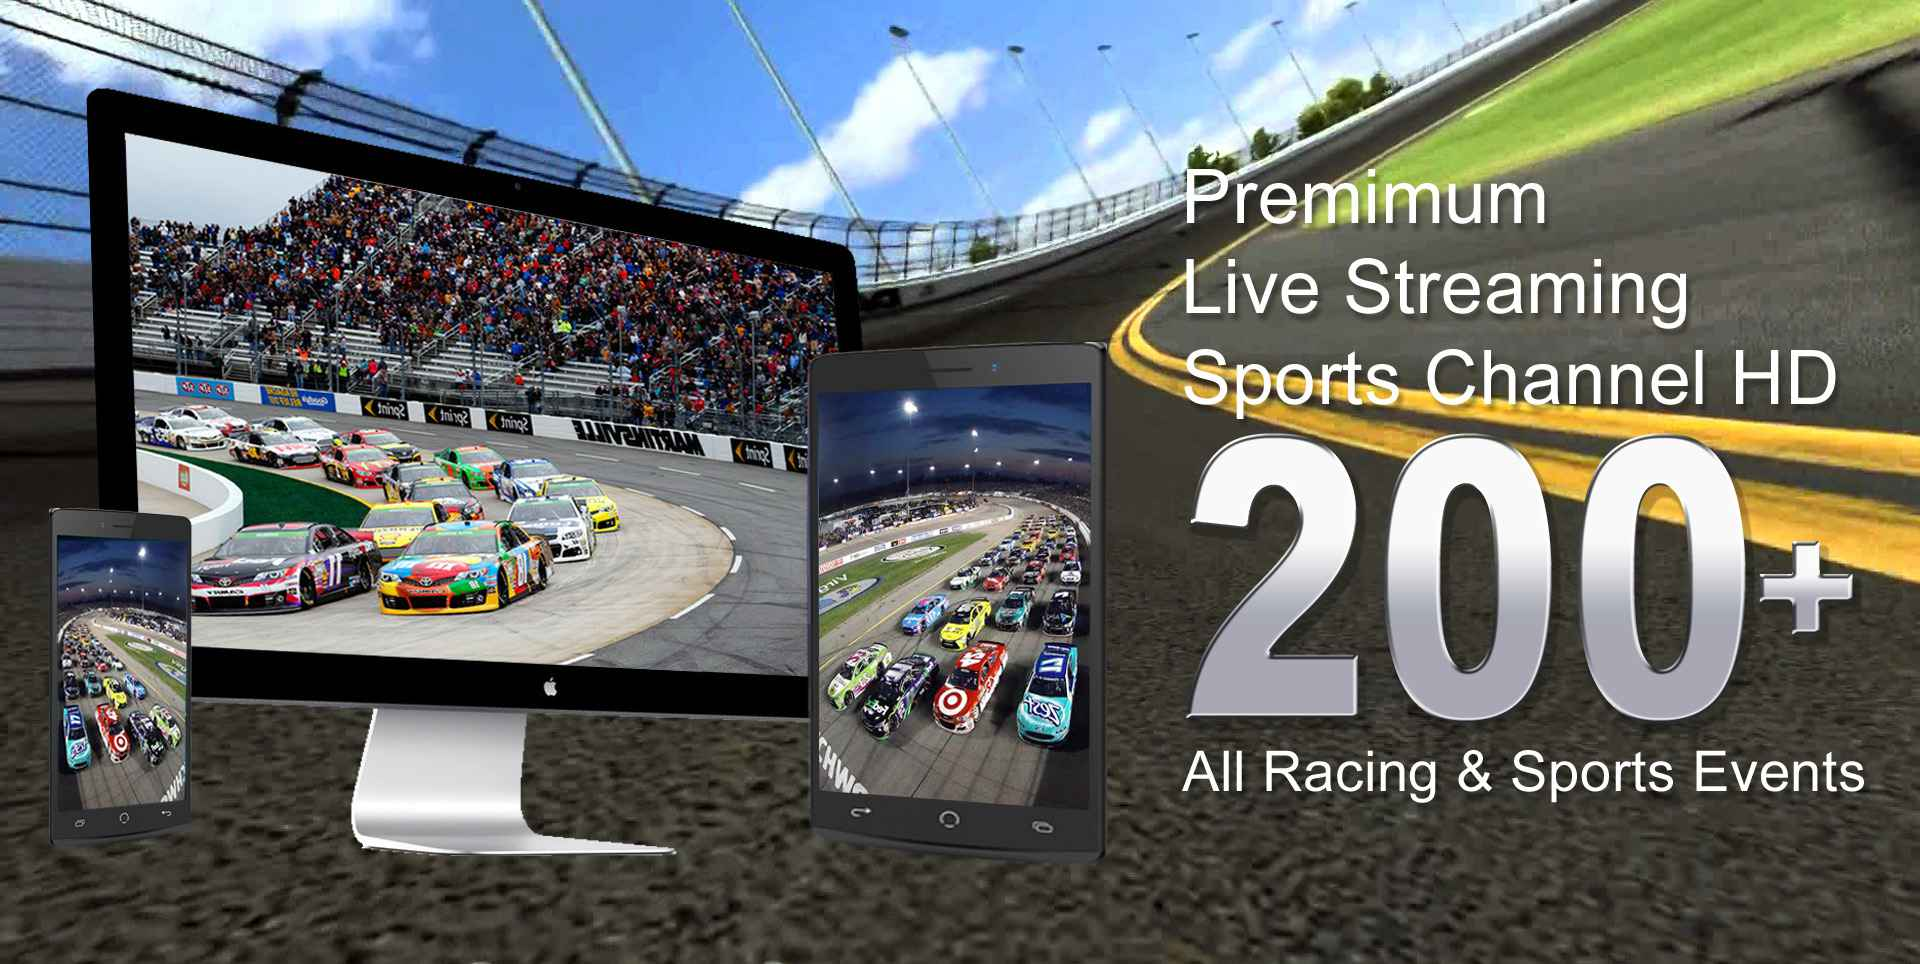 us%20cellular%20250 Nascar US Cellular 250 Race Live Stream